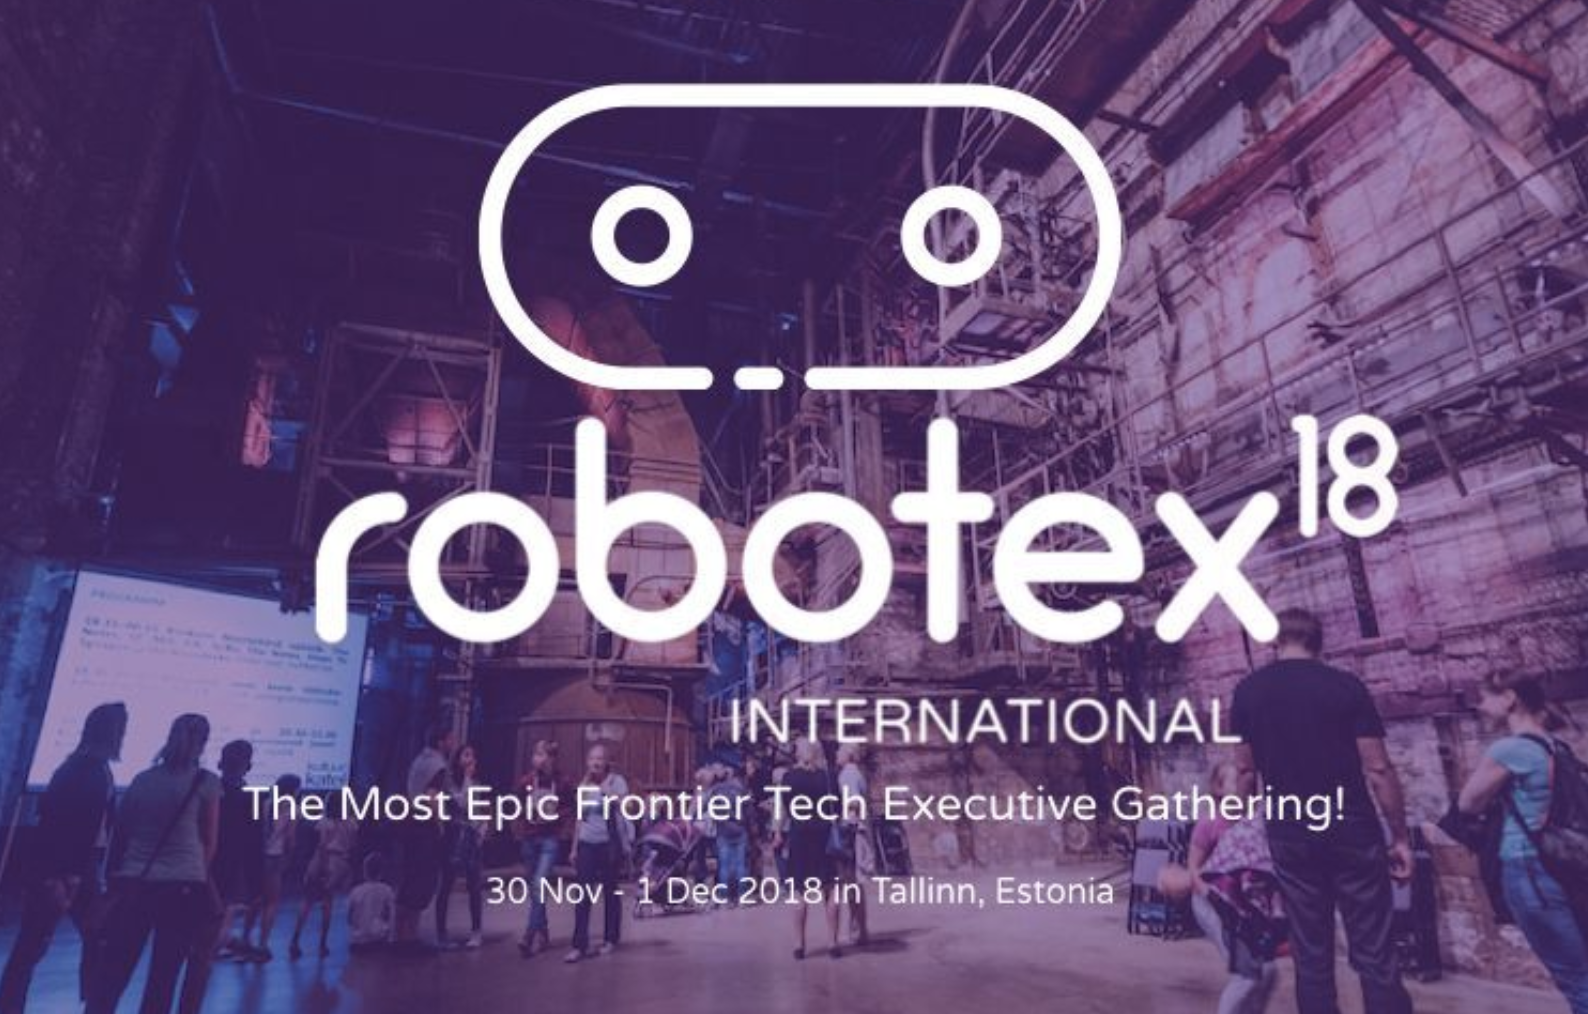 Robotex International Conference is the must-attend event of 2018